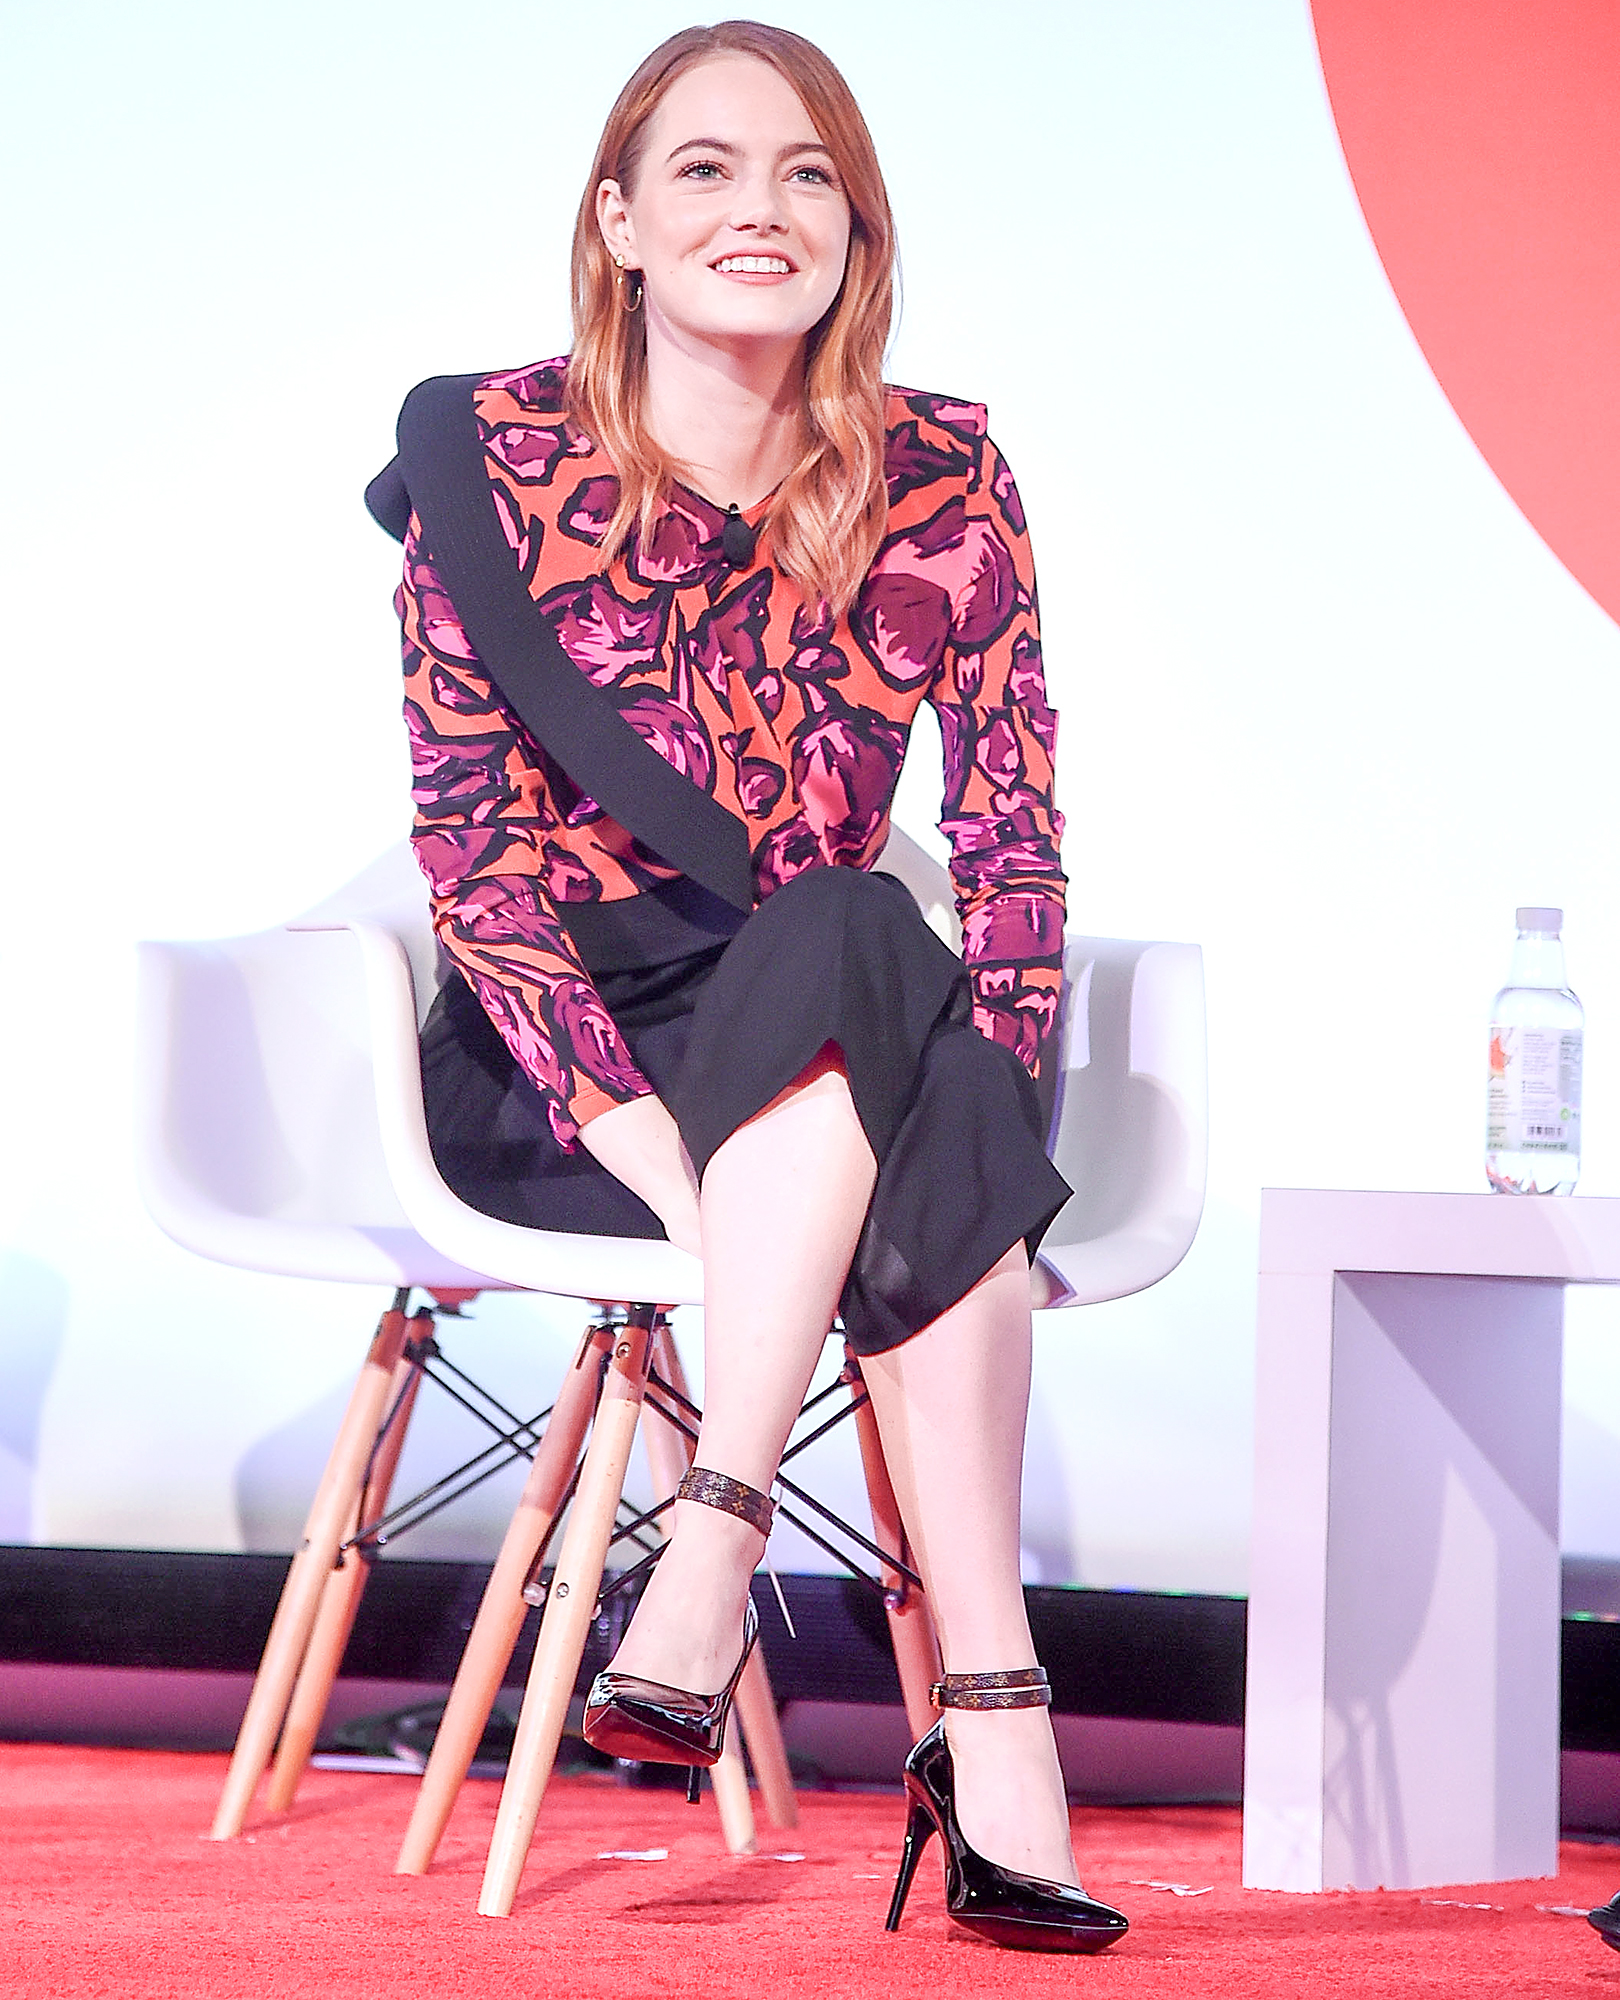 Great Minds Think Unalike: A Conversation With Emma Stone And Dr. Harold S. Koplewicz